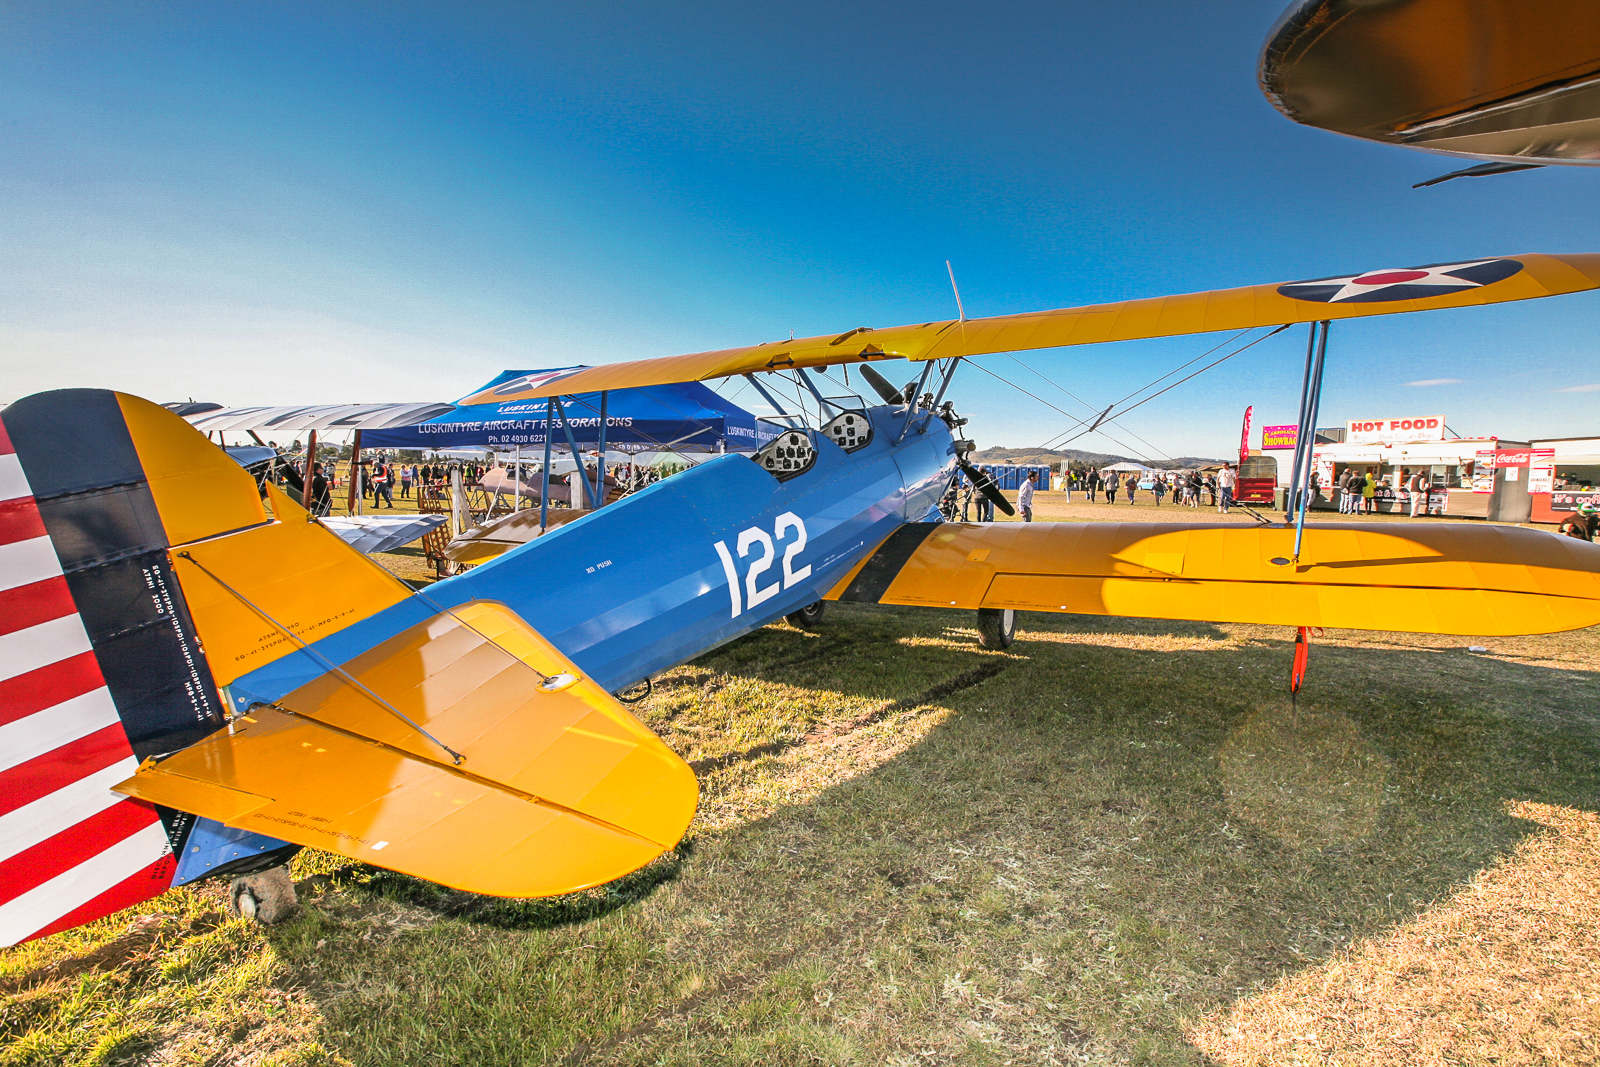 One of several WWII-era biplane trainers on display at Maitland. (photo by Phil Buckley)